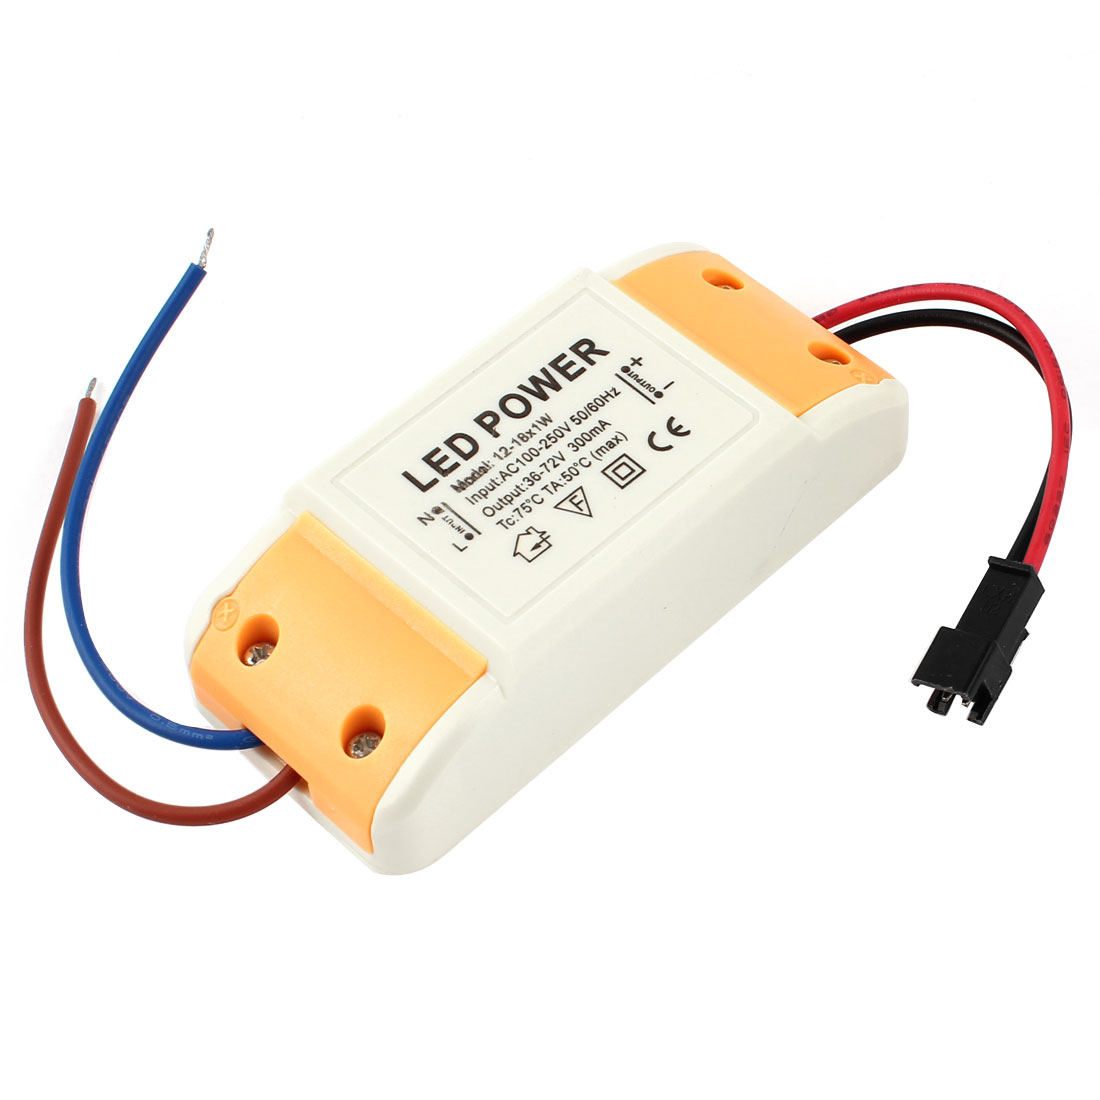 AC 100-250V 300mA Driver Power Supply Converter 12-18 x 1W LED Light